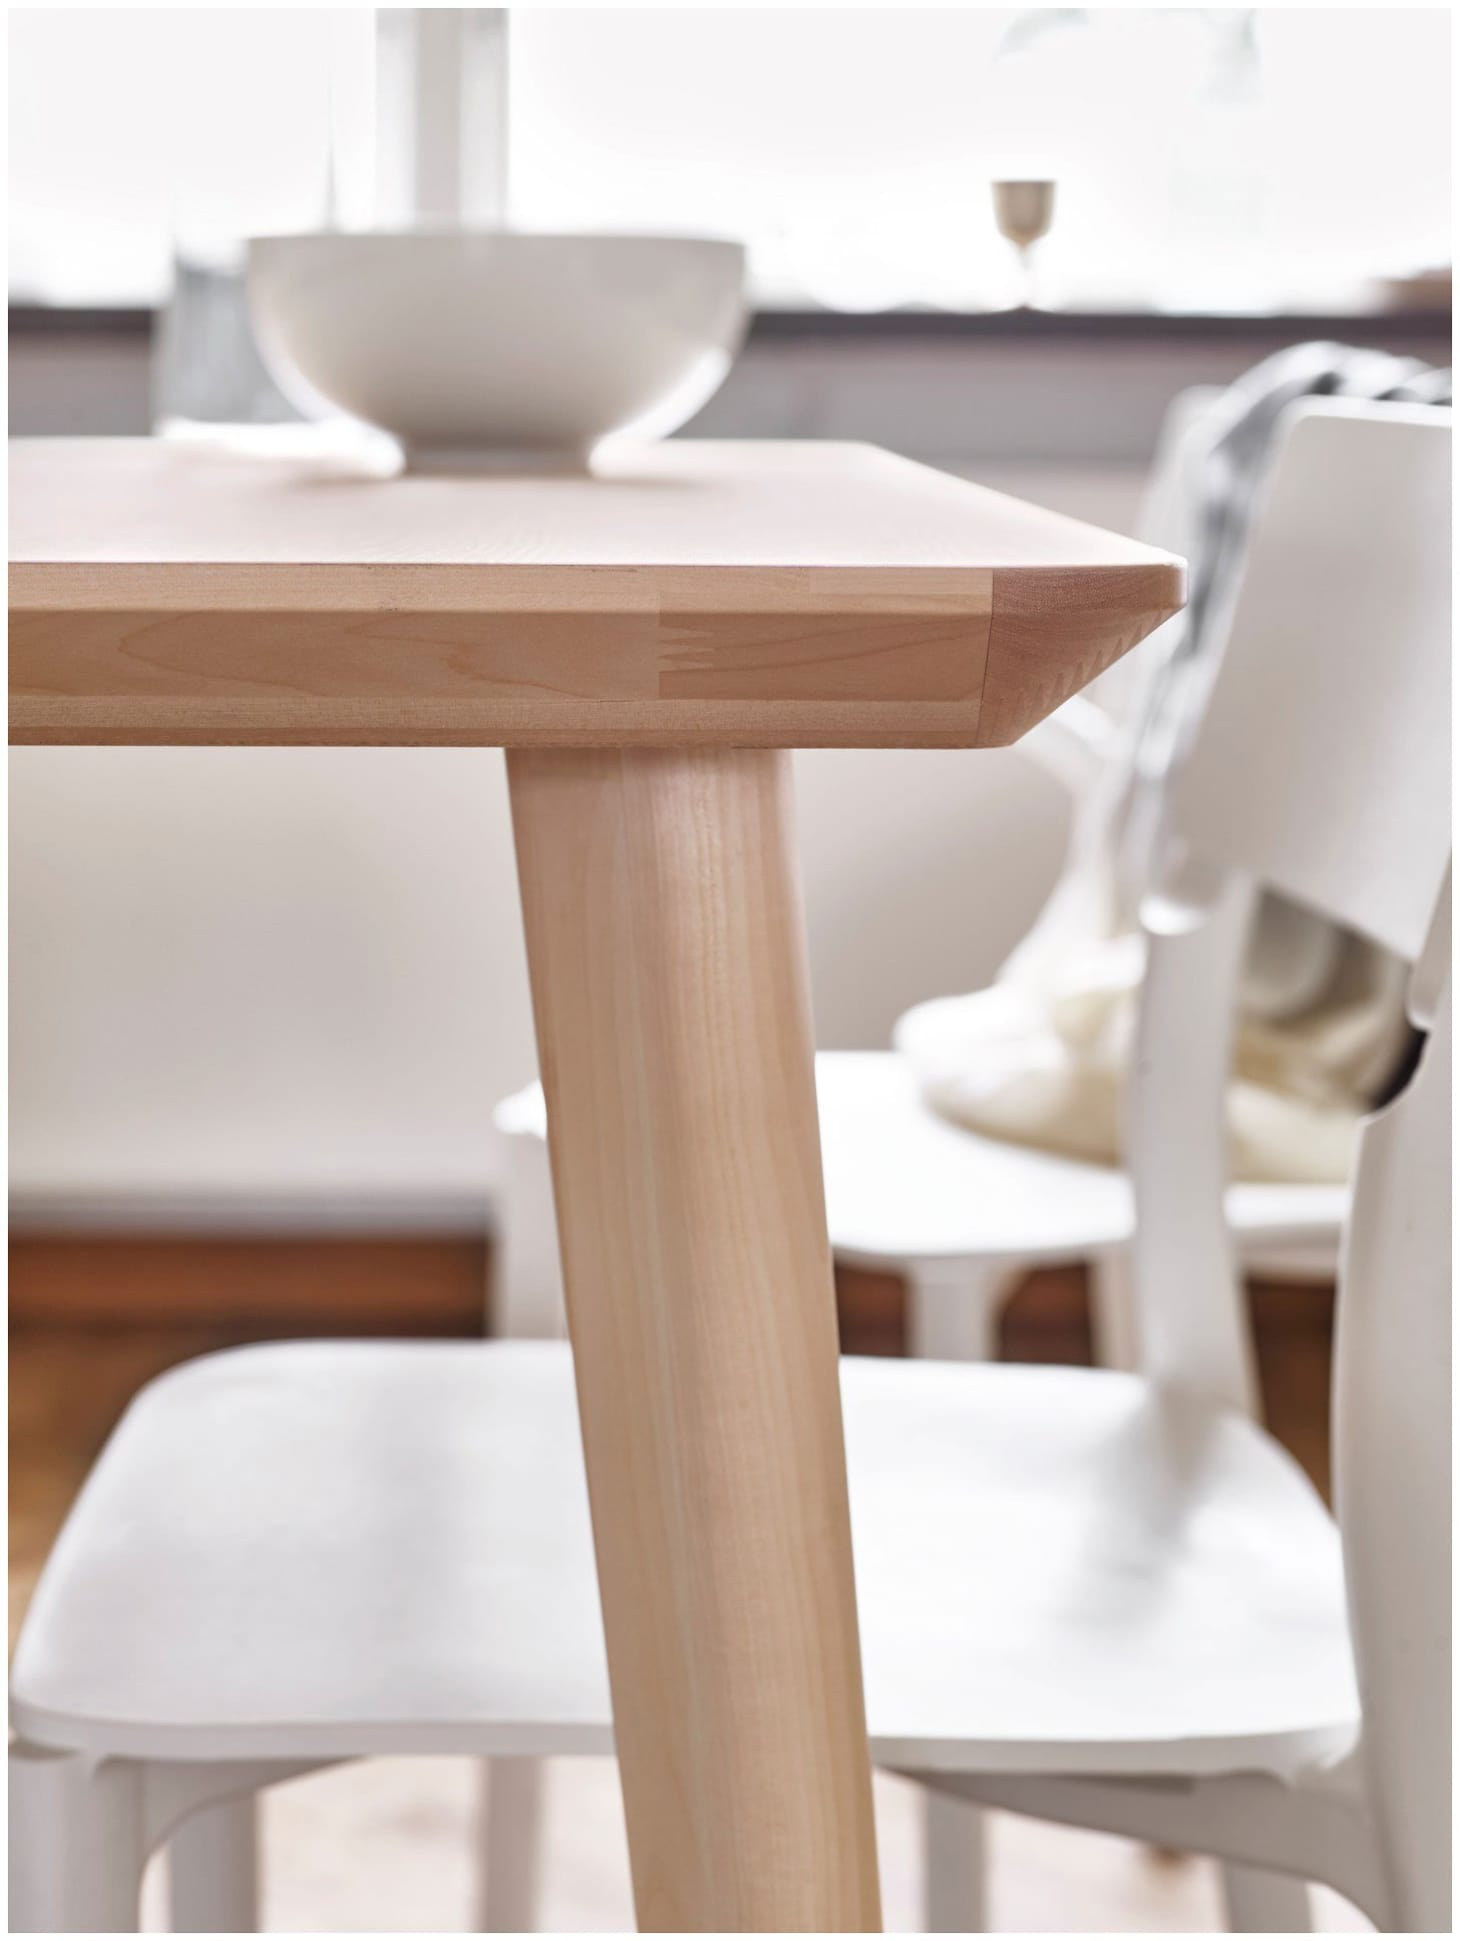 Enjoyable Ikeas Cleanest Simplest Dining Table Kitchn Download Free Architecture Designs Rallybritishbridgeorg